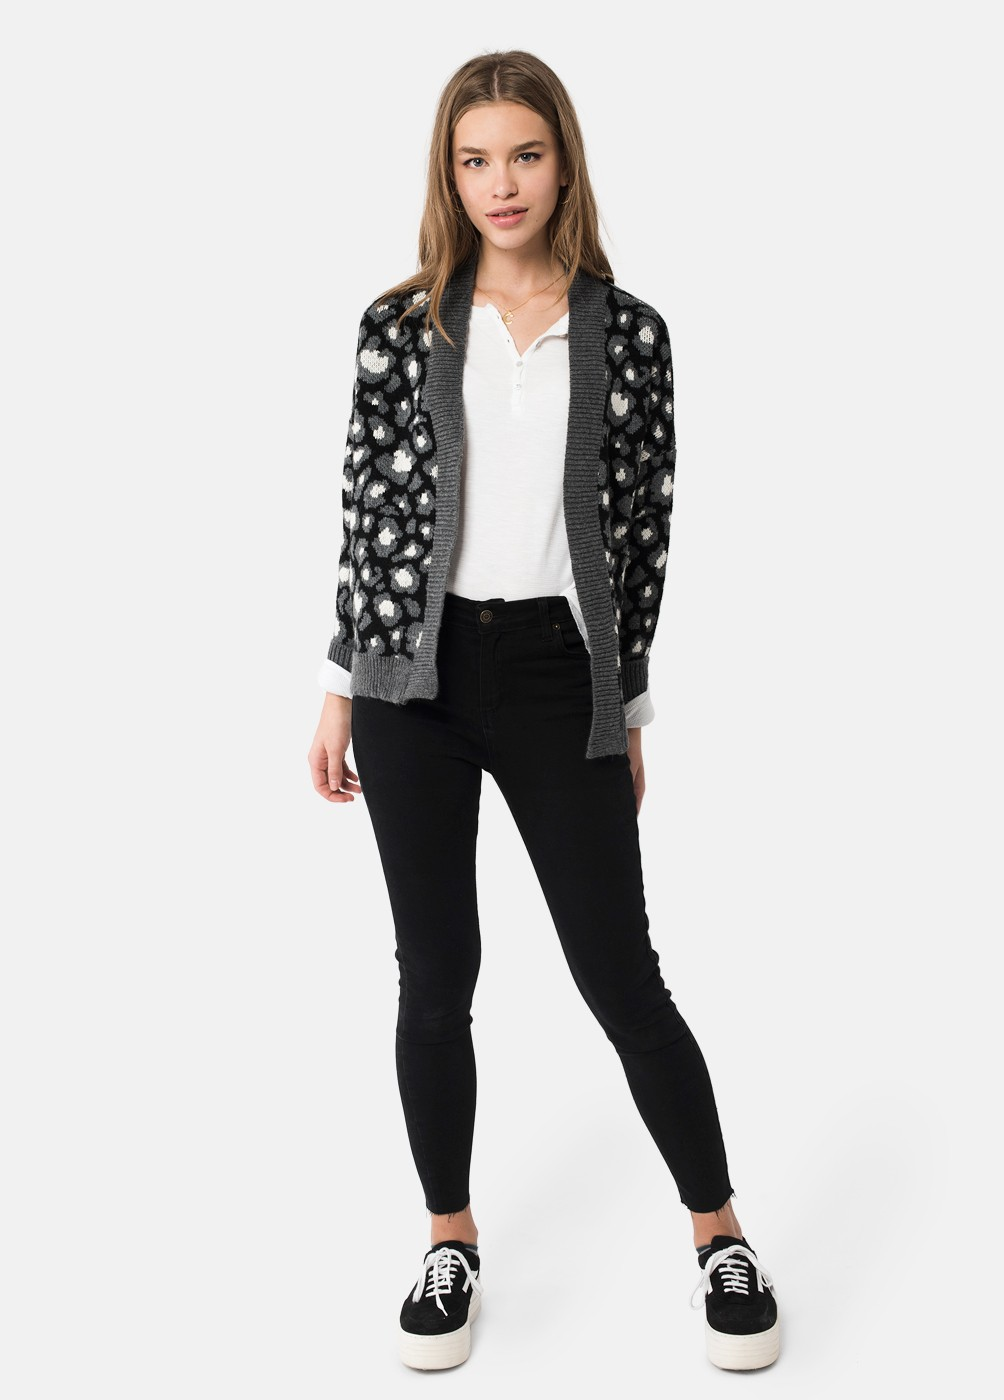 LEOPARD PRINT KNIT JACKET